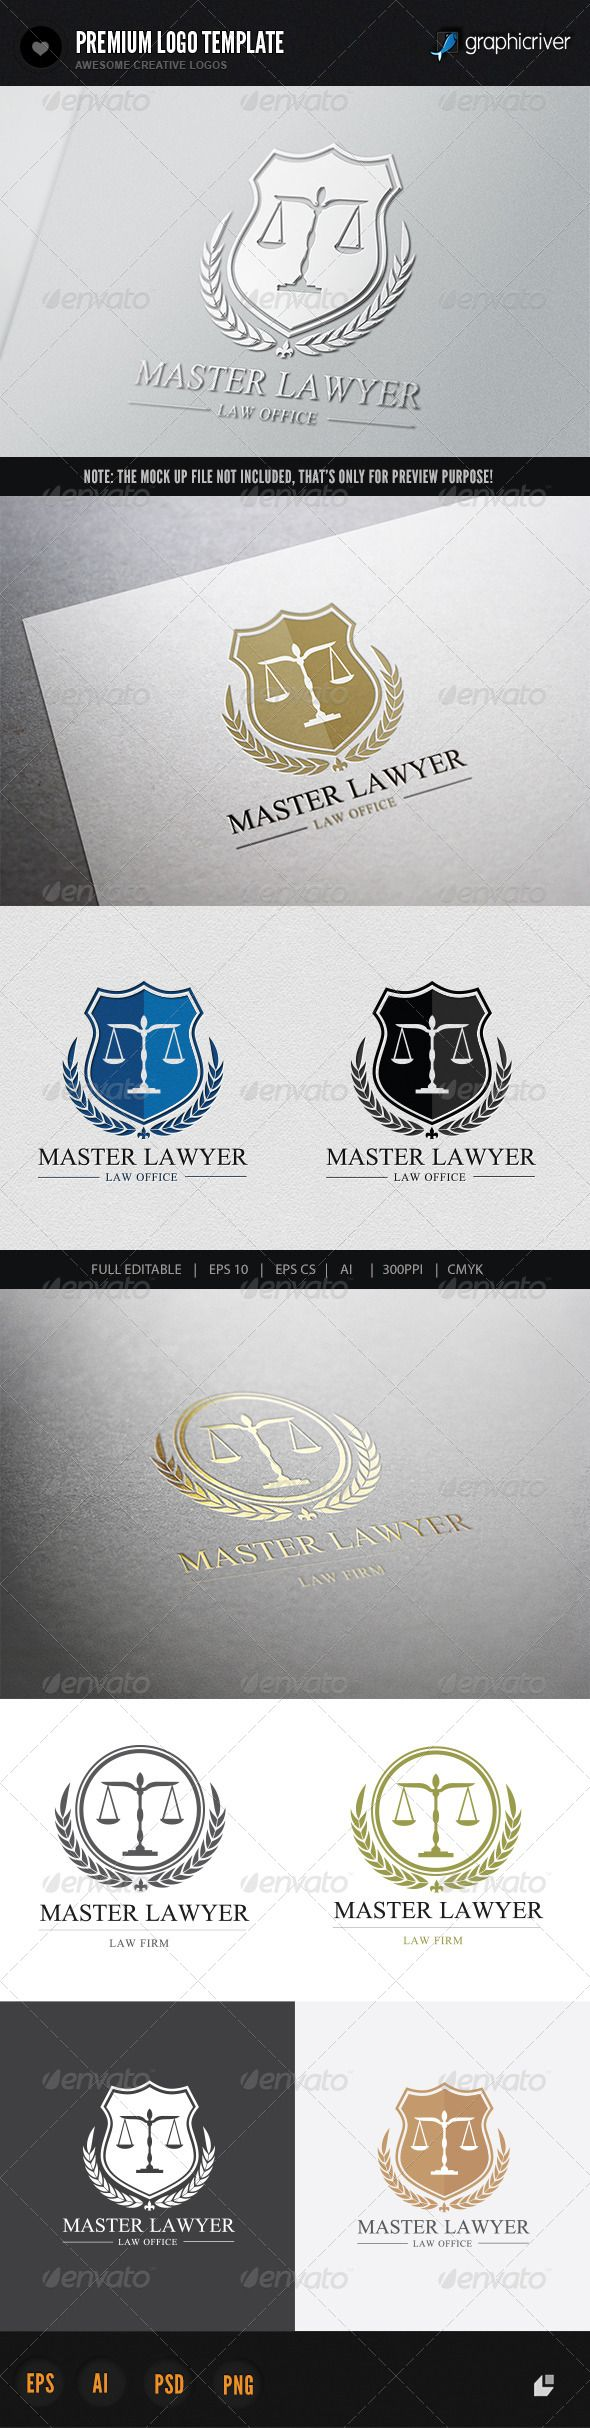 Law Firm V1 — Photoshop PSD #branding #equilibrium • Available here → https://graphicriver.net/item/law-firm-v1/5740427?ref=pxcr